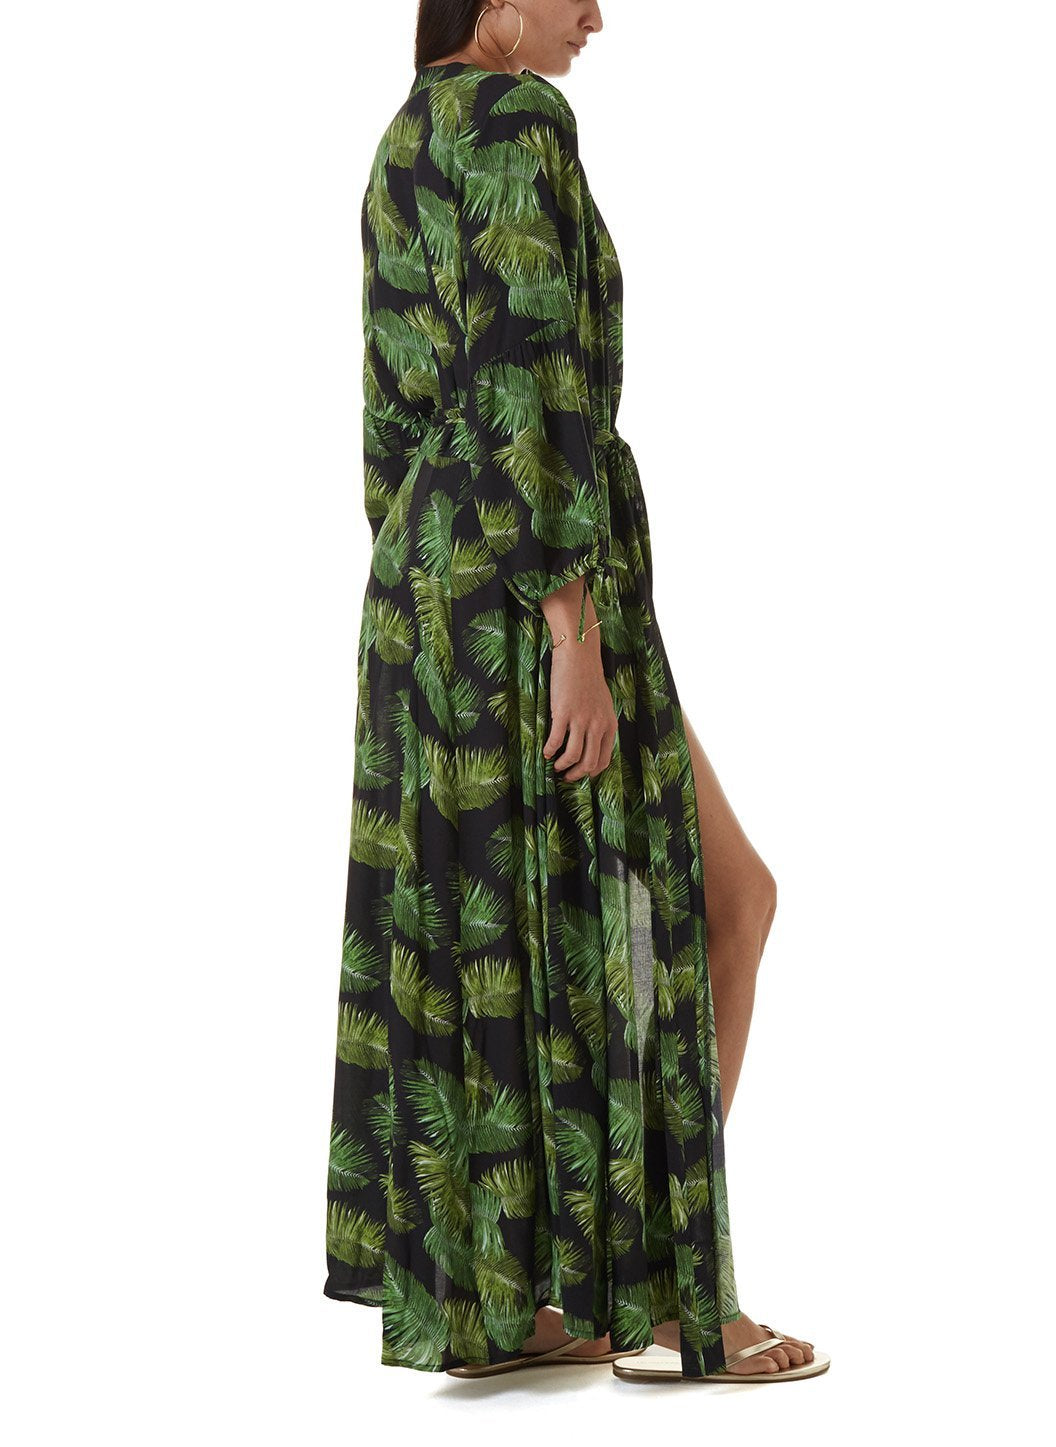 Margo Palm Black Long Dress